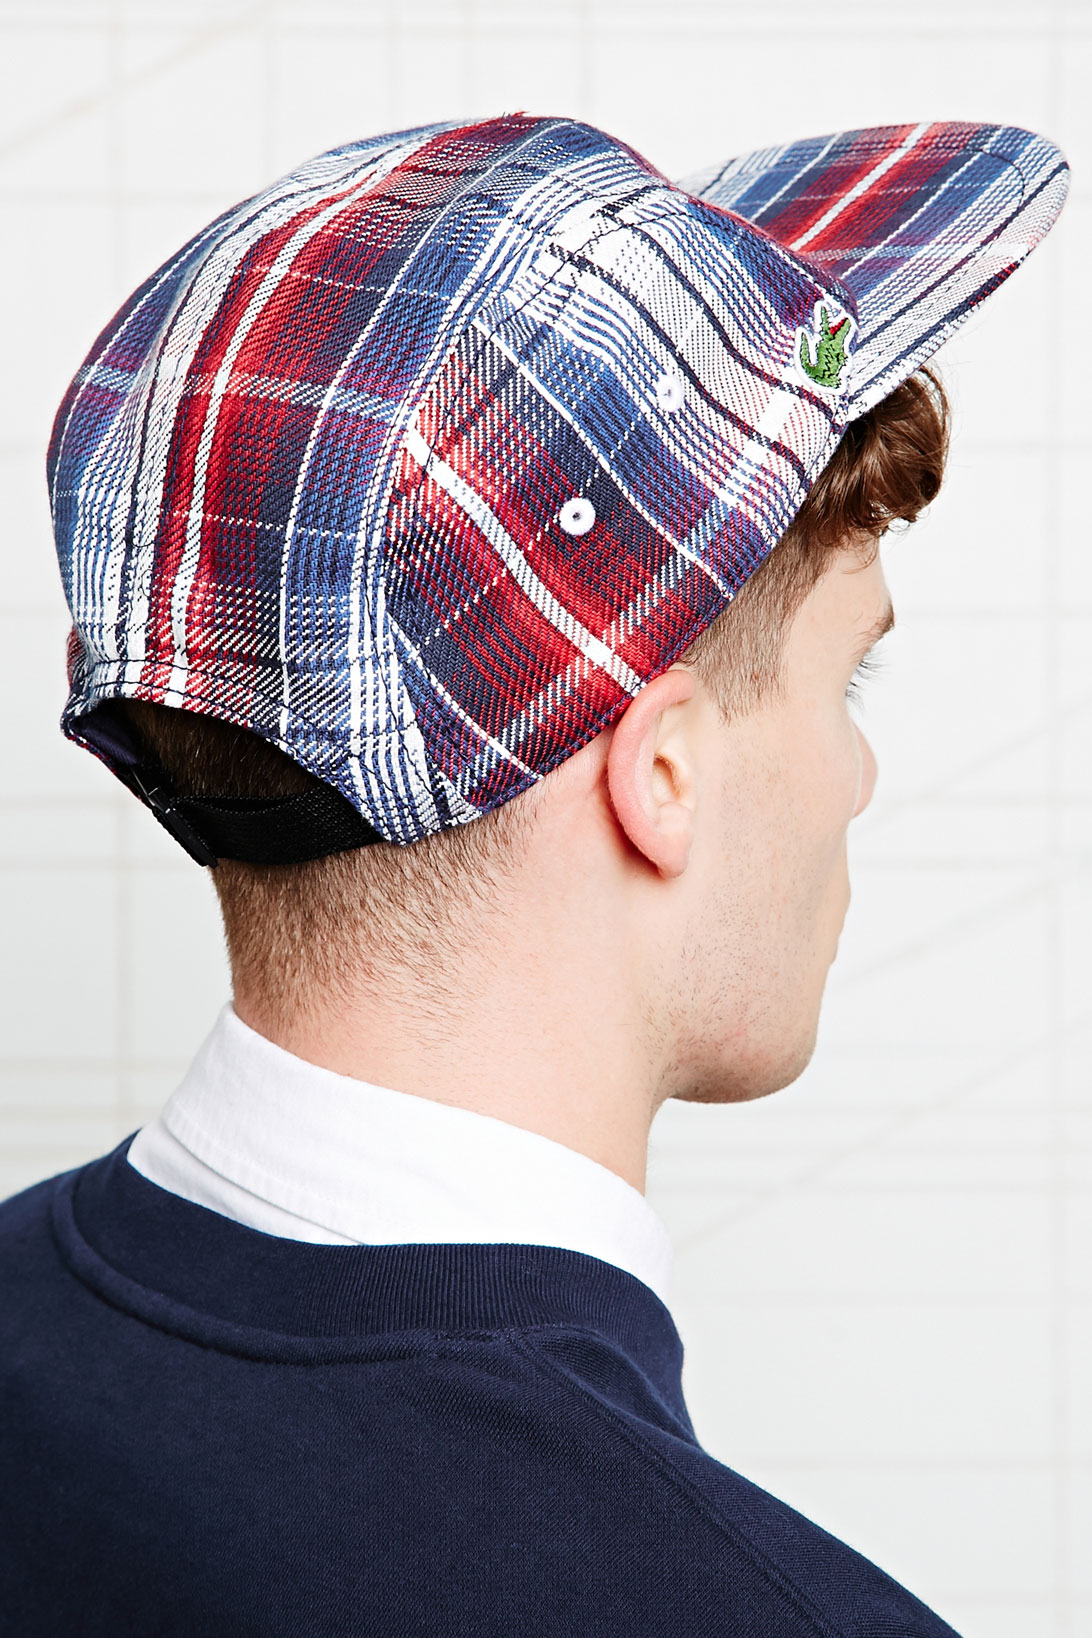 Lacoste Lacoste 5 Panel Cap in Check Print in Blue for Men - Lyst cf2f5b017ae